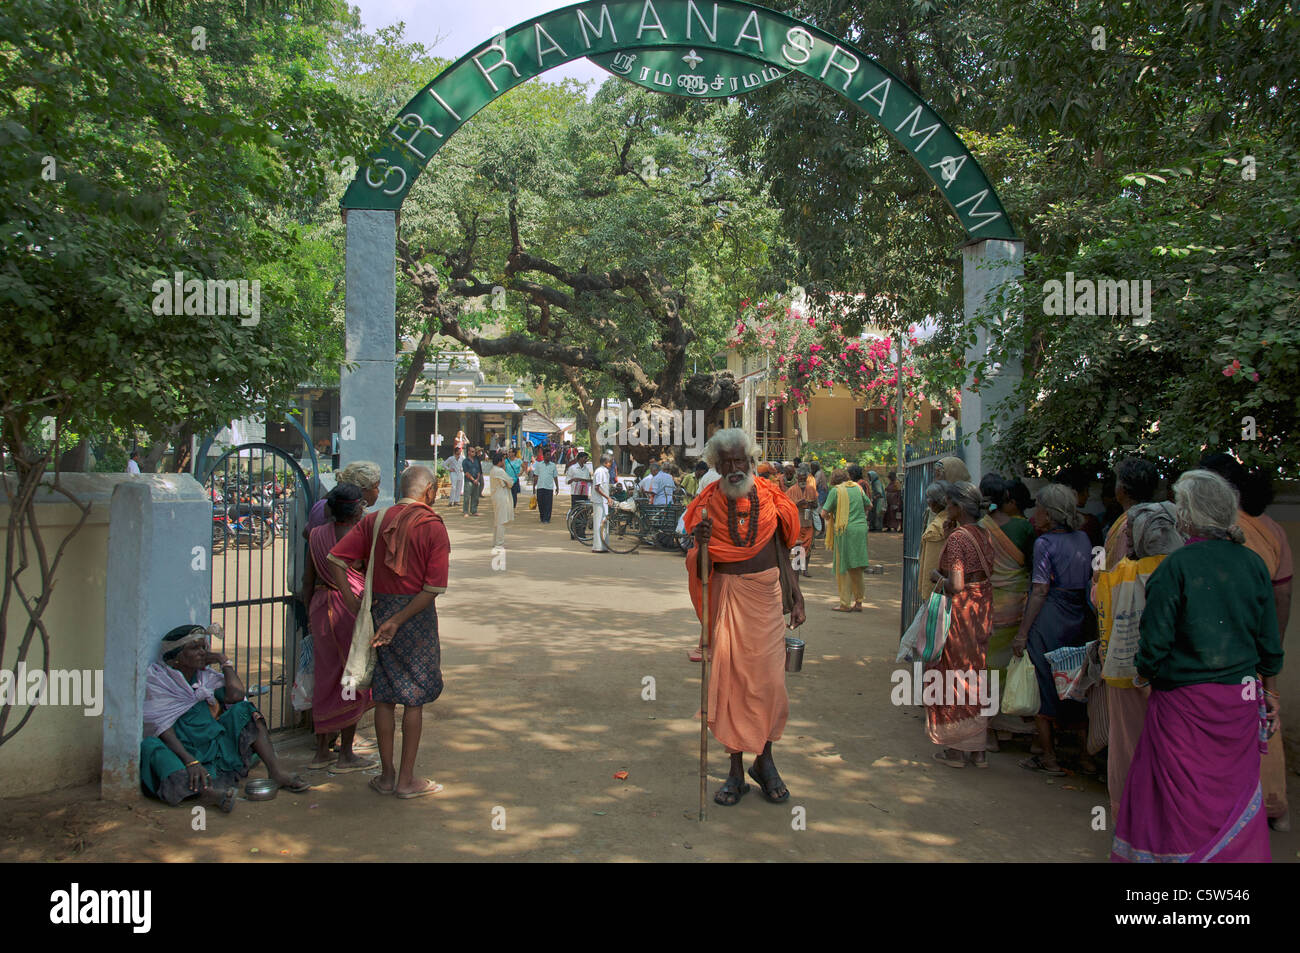 Entrance Sri Ramana Ashram Tiruvannamalai Tamil Nadu South India - Stock Image